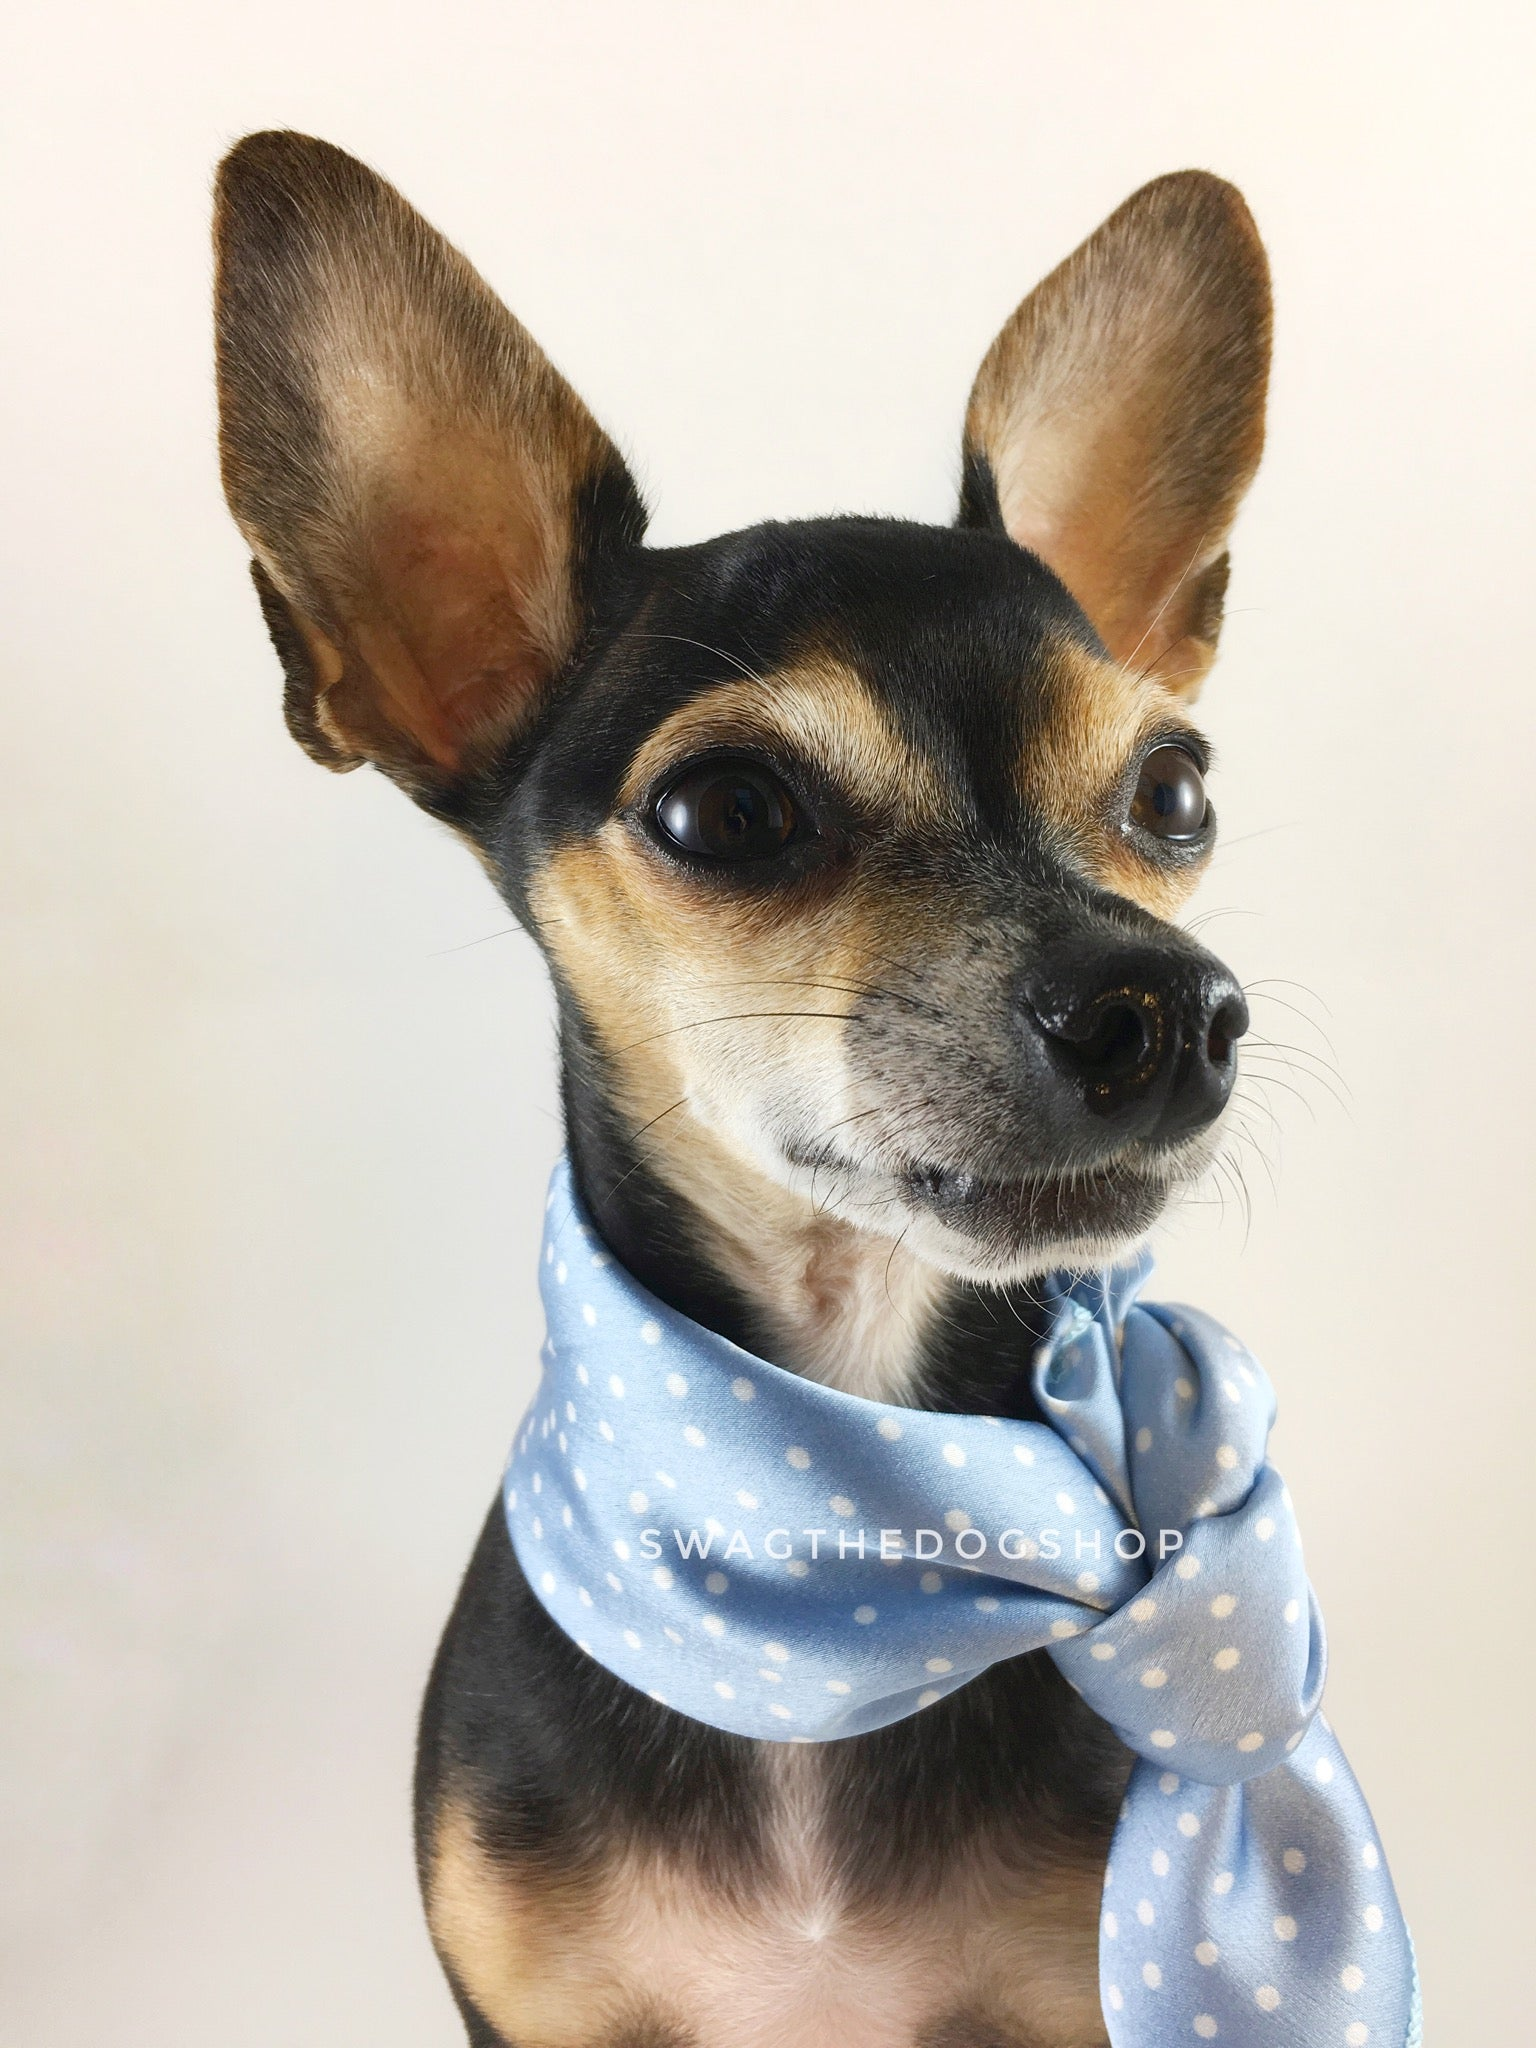 Polka Itty Bitty Powder Blue Swagdana Scarf - Bust of Cute Chihuahua Wearing Swagdana Scarf as Neckerchief. Dog Bandana. Dog Scarf.